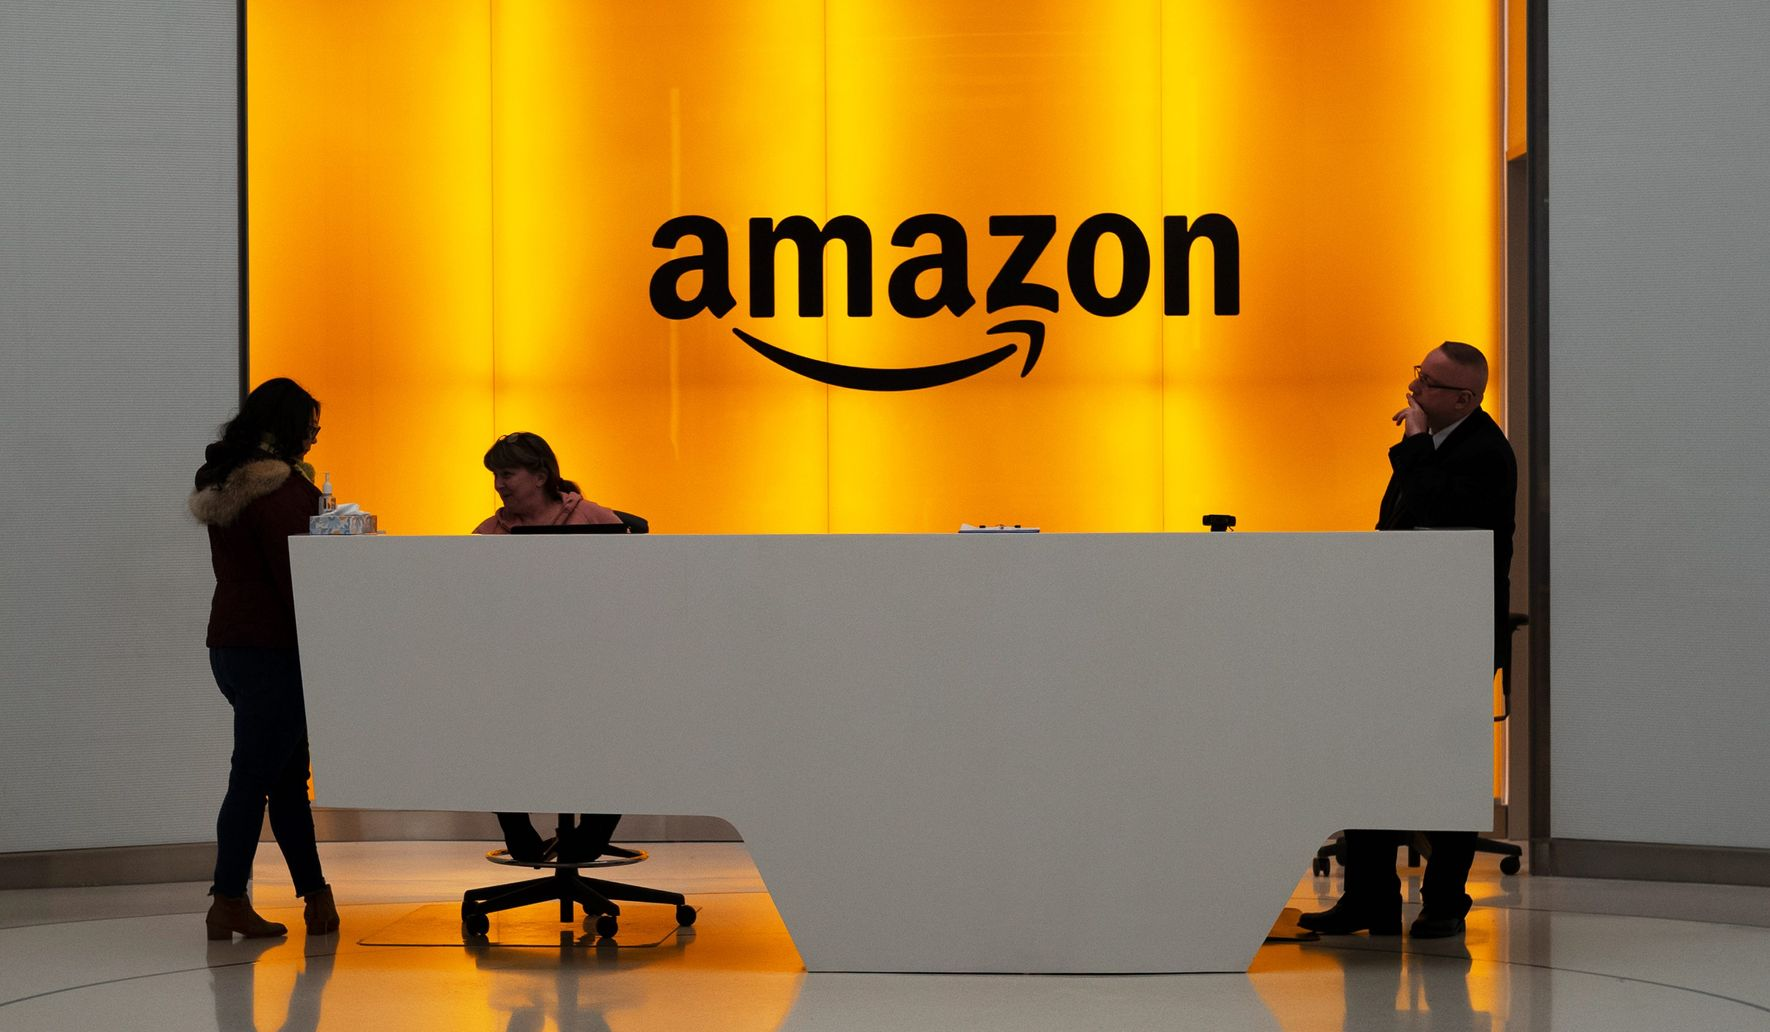 Lawmakers urge Trump to take reigns of massive Pentagon-Amazon cloud computing deal